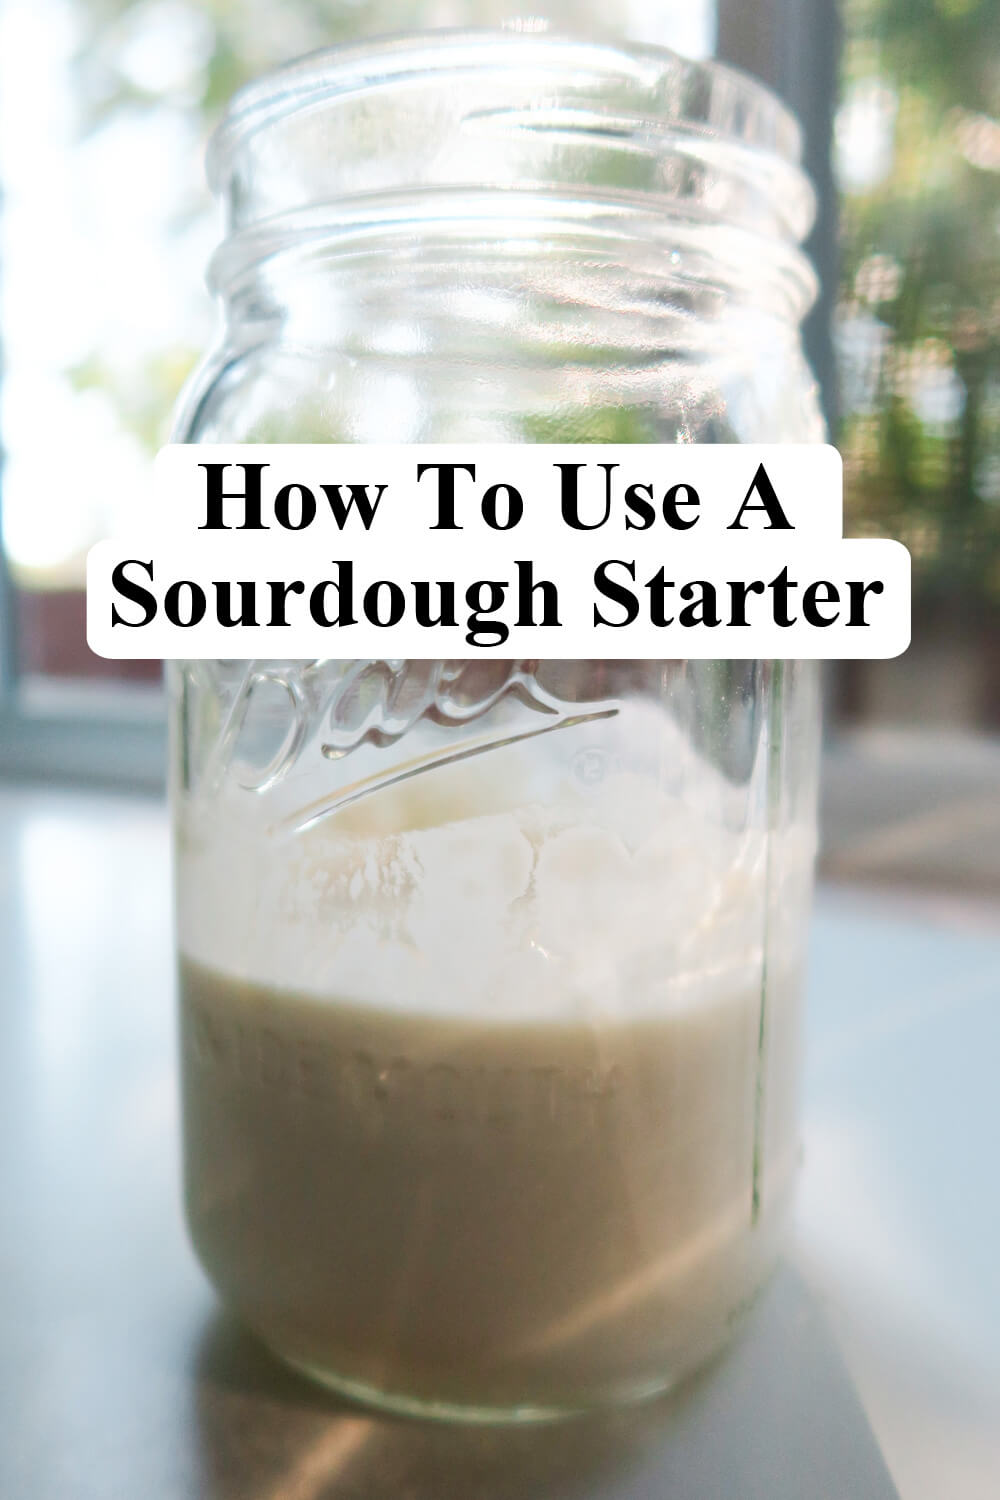 How To Use A Sourdough Starter